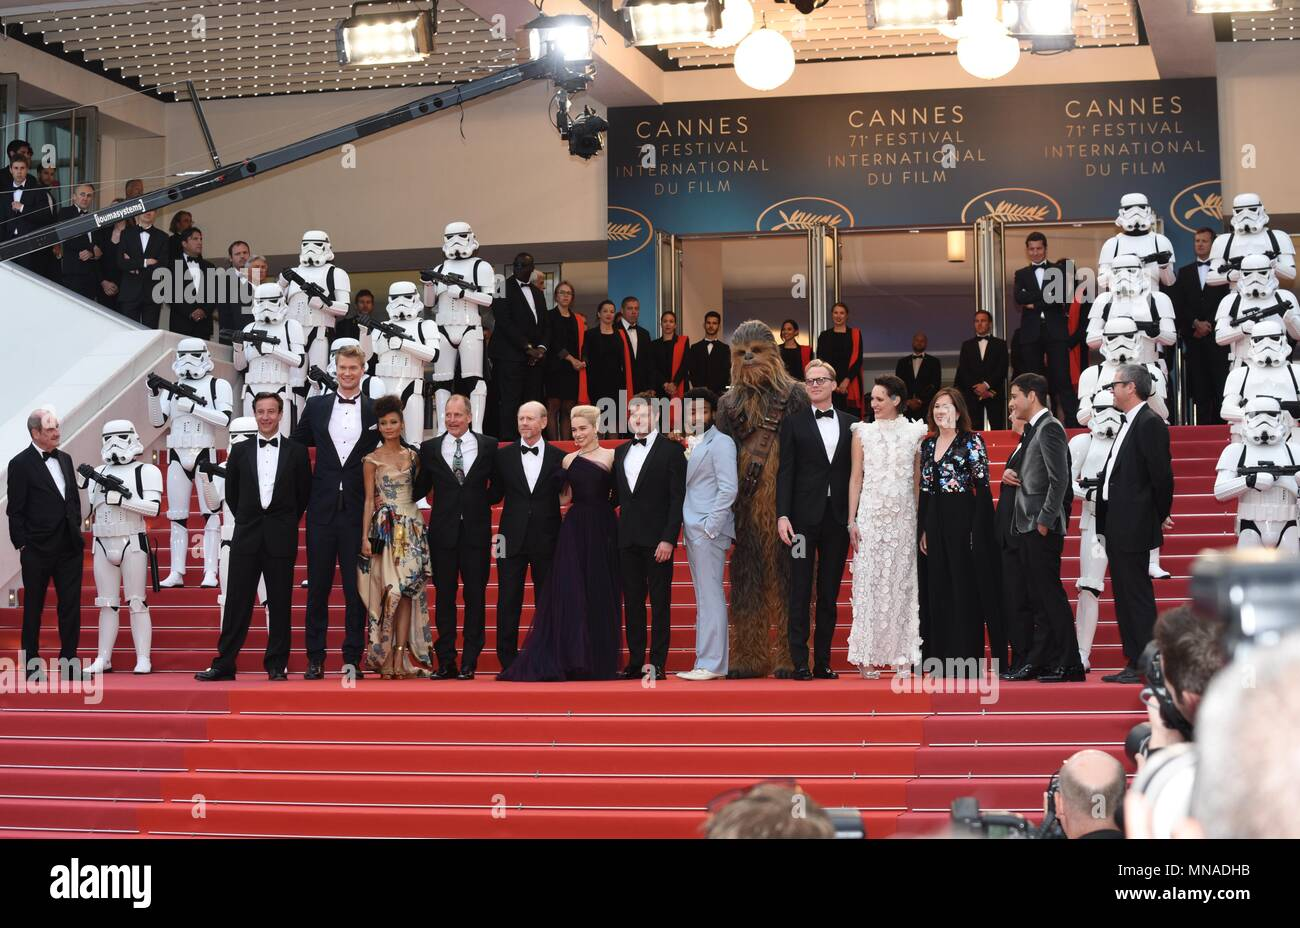 Cannes, France. May 15, 2018 - Cannes, France:  Joonas Suotamo, Thandie Newton, Woody Harrelson, Ron Howard, Emilia Clarke, Alden Ehrenreich, Donald Glover, Chewbacca attend the 'Solo: a Star Wars Story' premiere during the 71st Cannes film festival. Credit: Idealink Photography/Alamy Live News - Stock Image